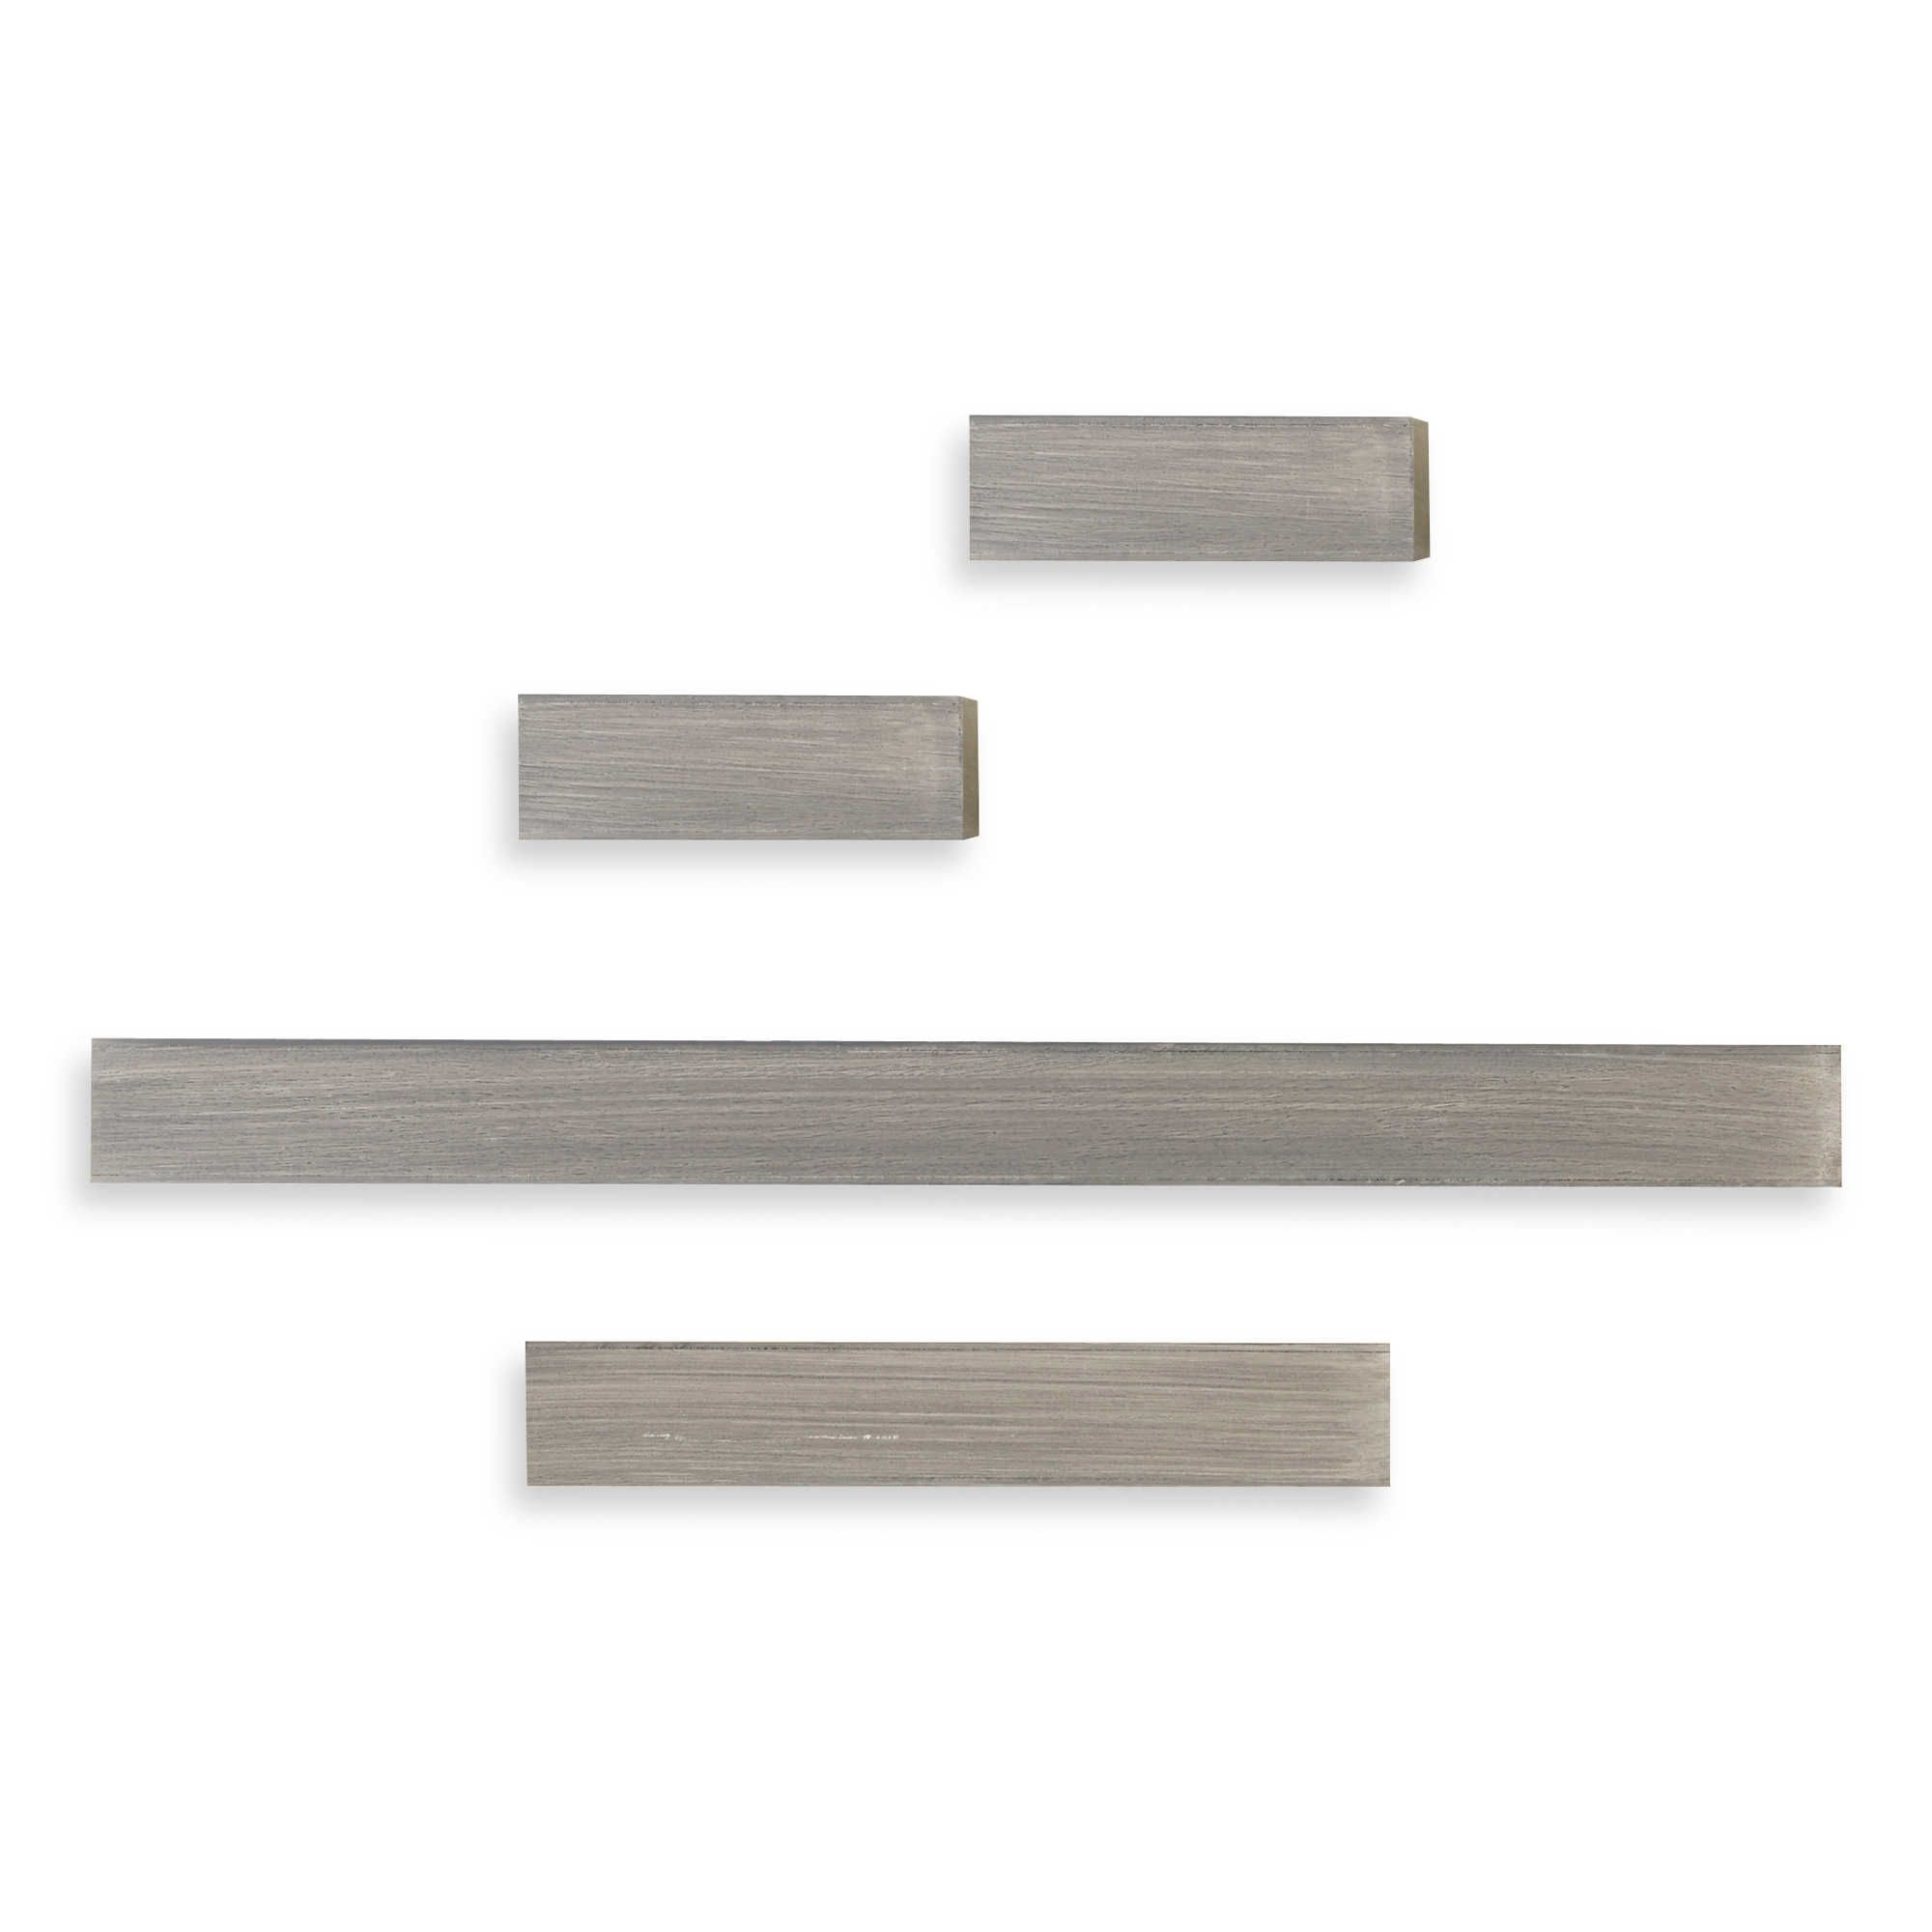 Melannco Floating Shelves Adorable Melannco® Floating Shelves In Grey Set Of 4  Living Room Review